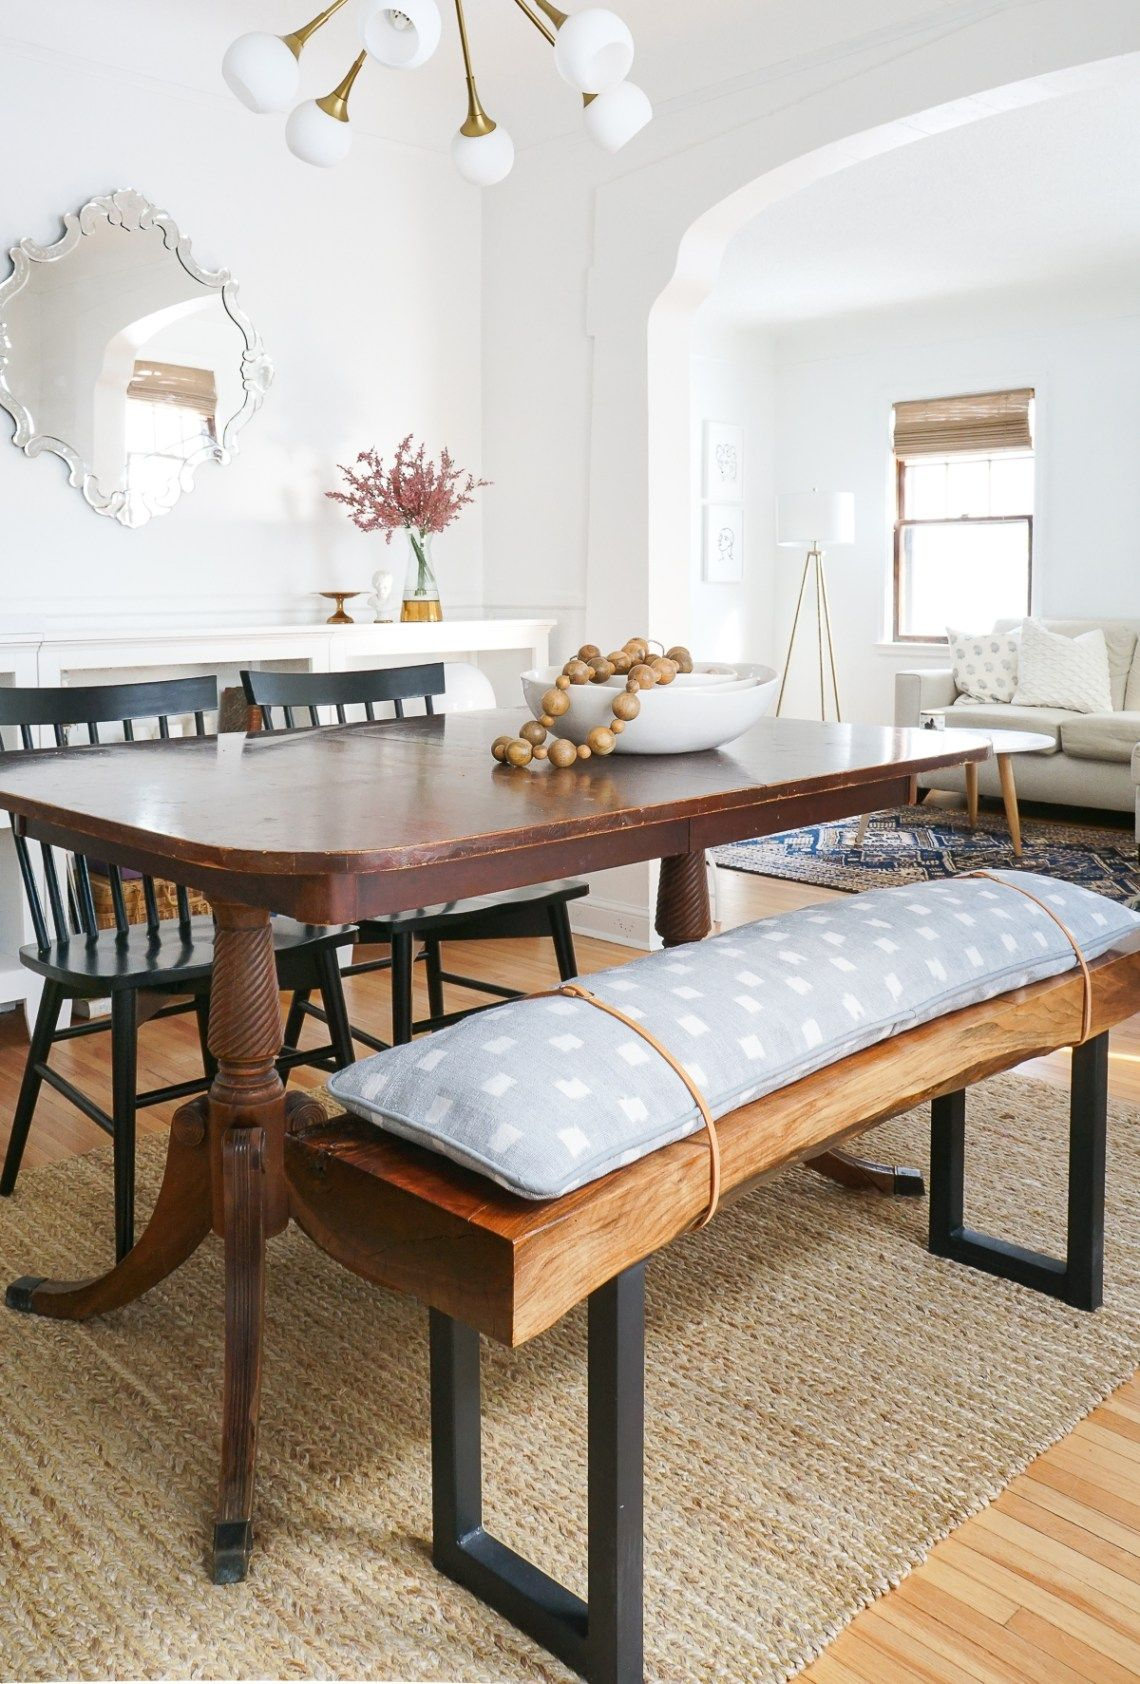 Diy Modern Bench Cushion With Leather Straps Francois Et Moi Dining Room Bench Dining Bench Cushion Bench Cushions